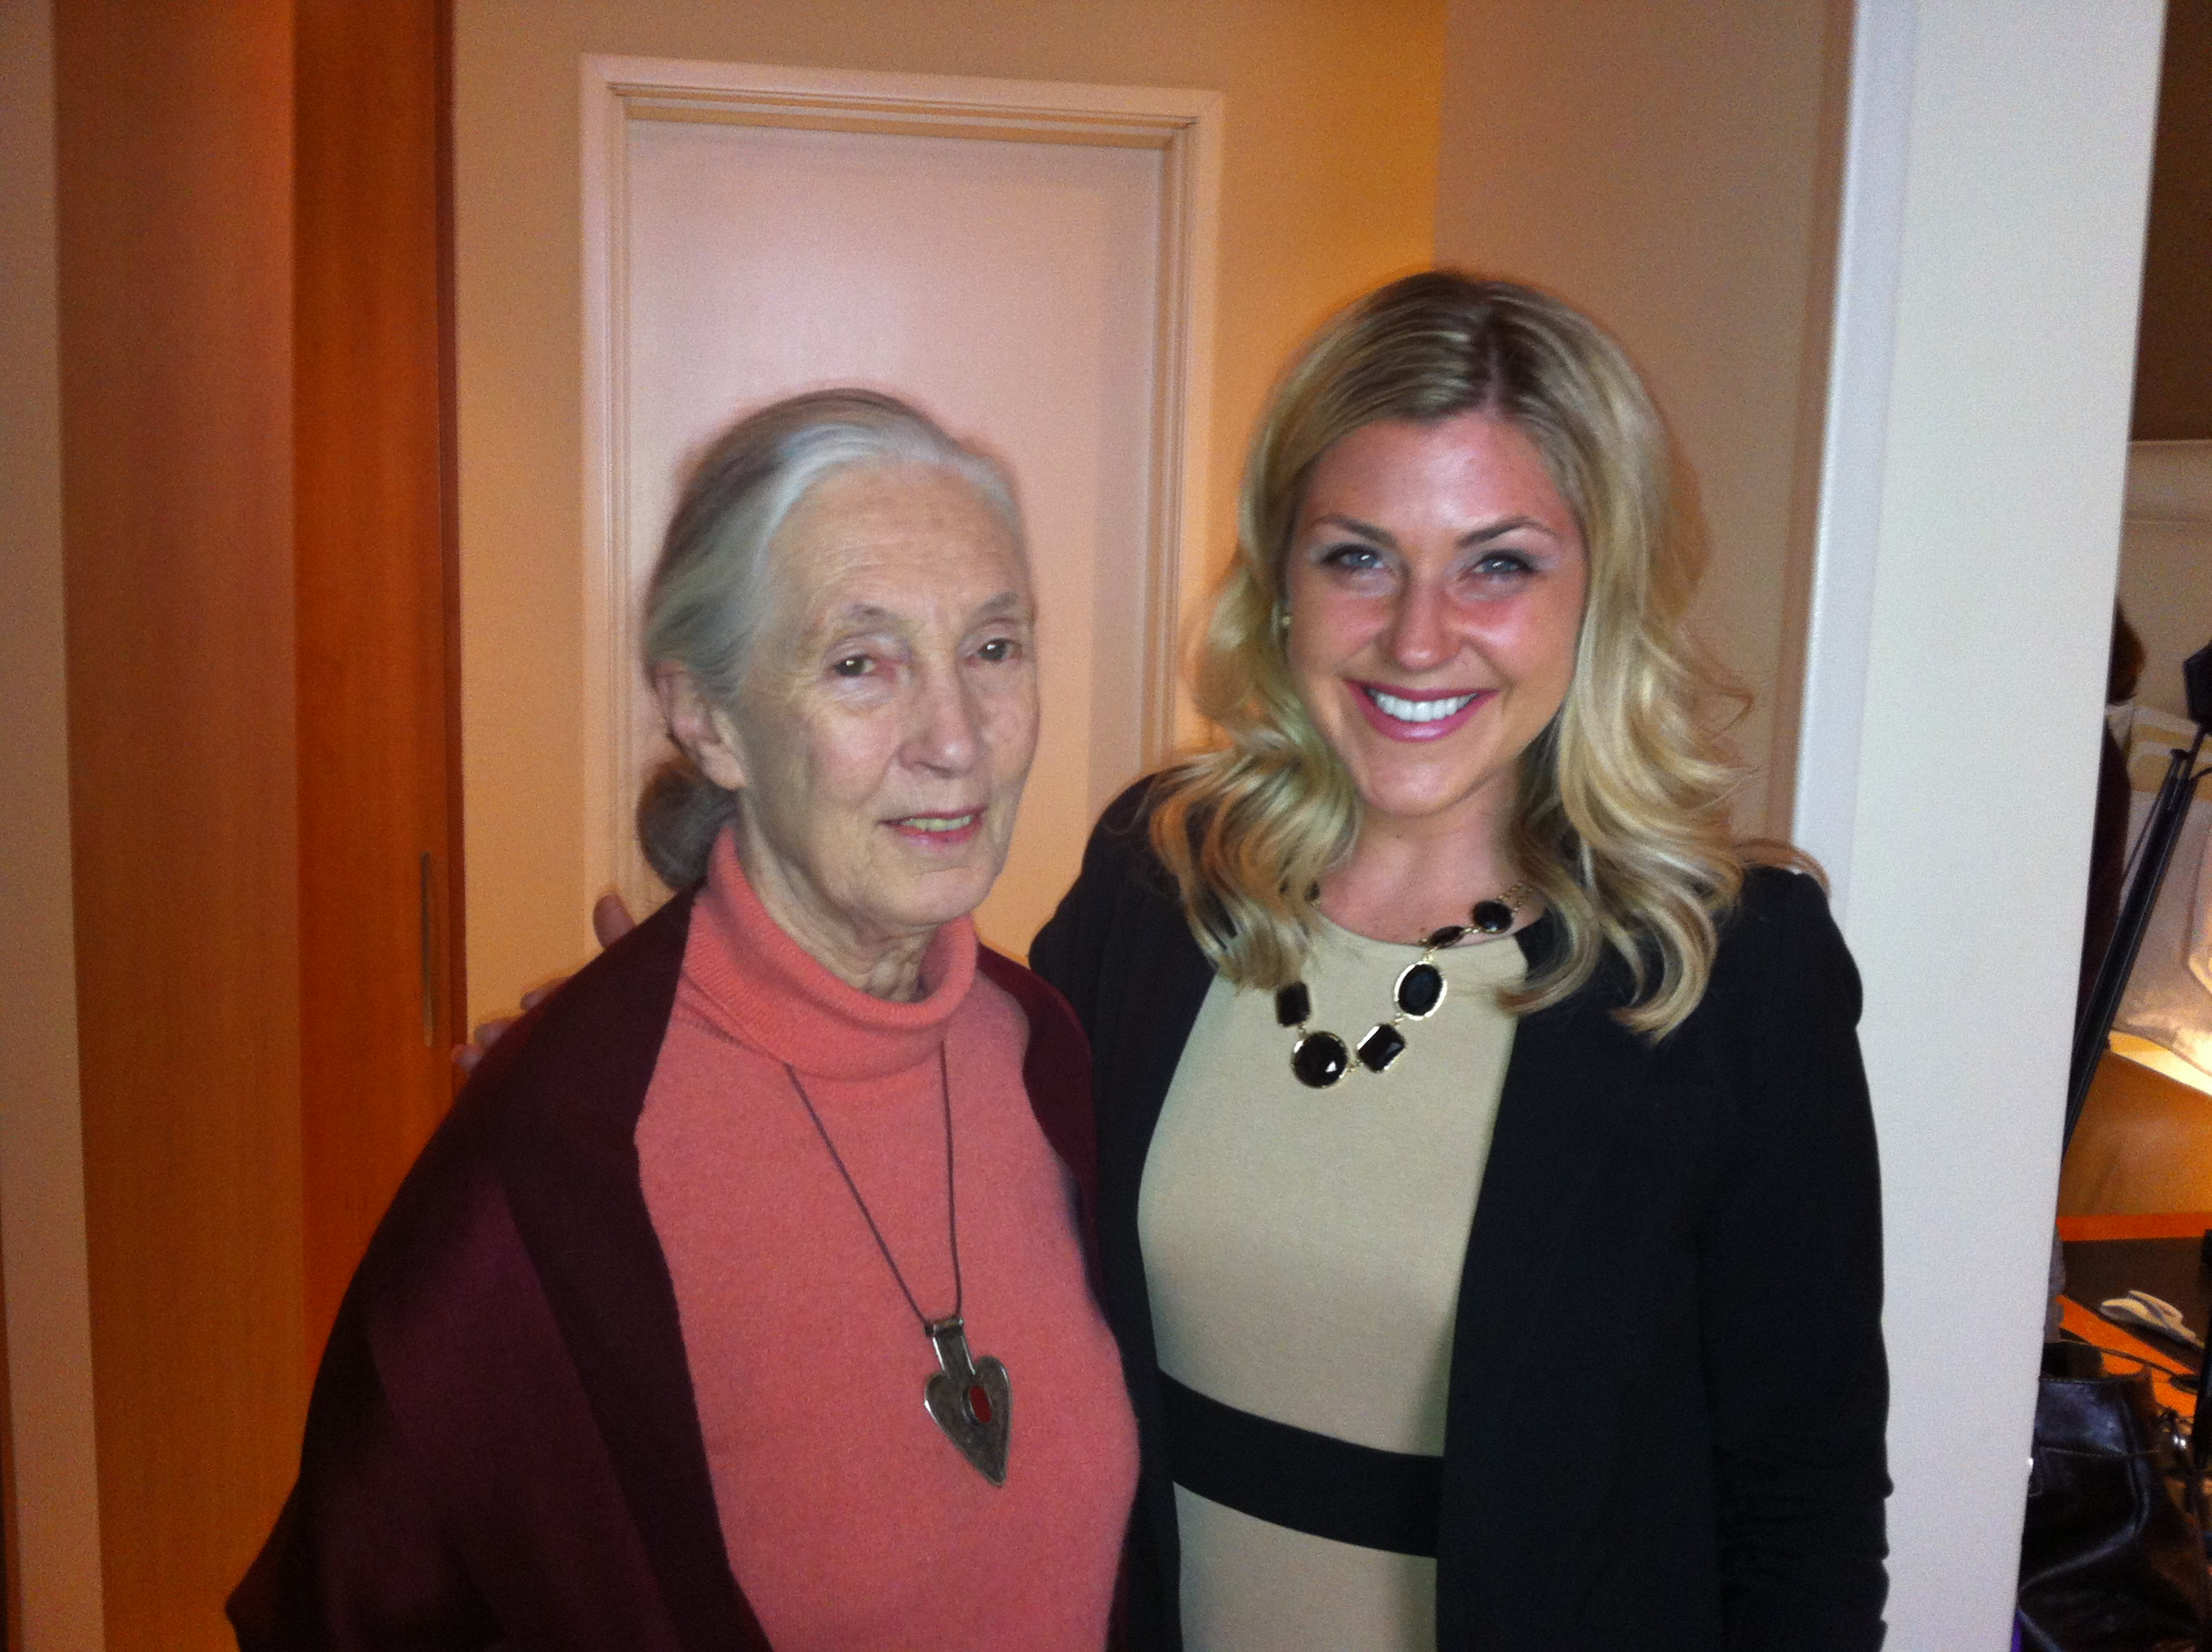 Carri Wilbanks with Dr. Jane Goodall